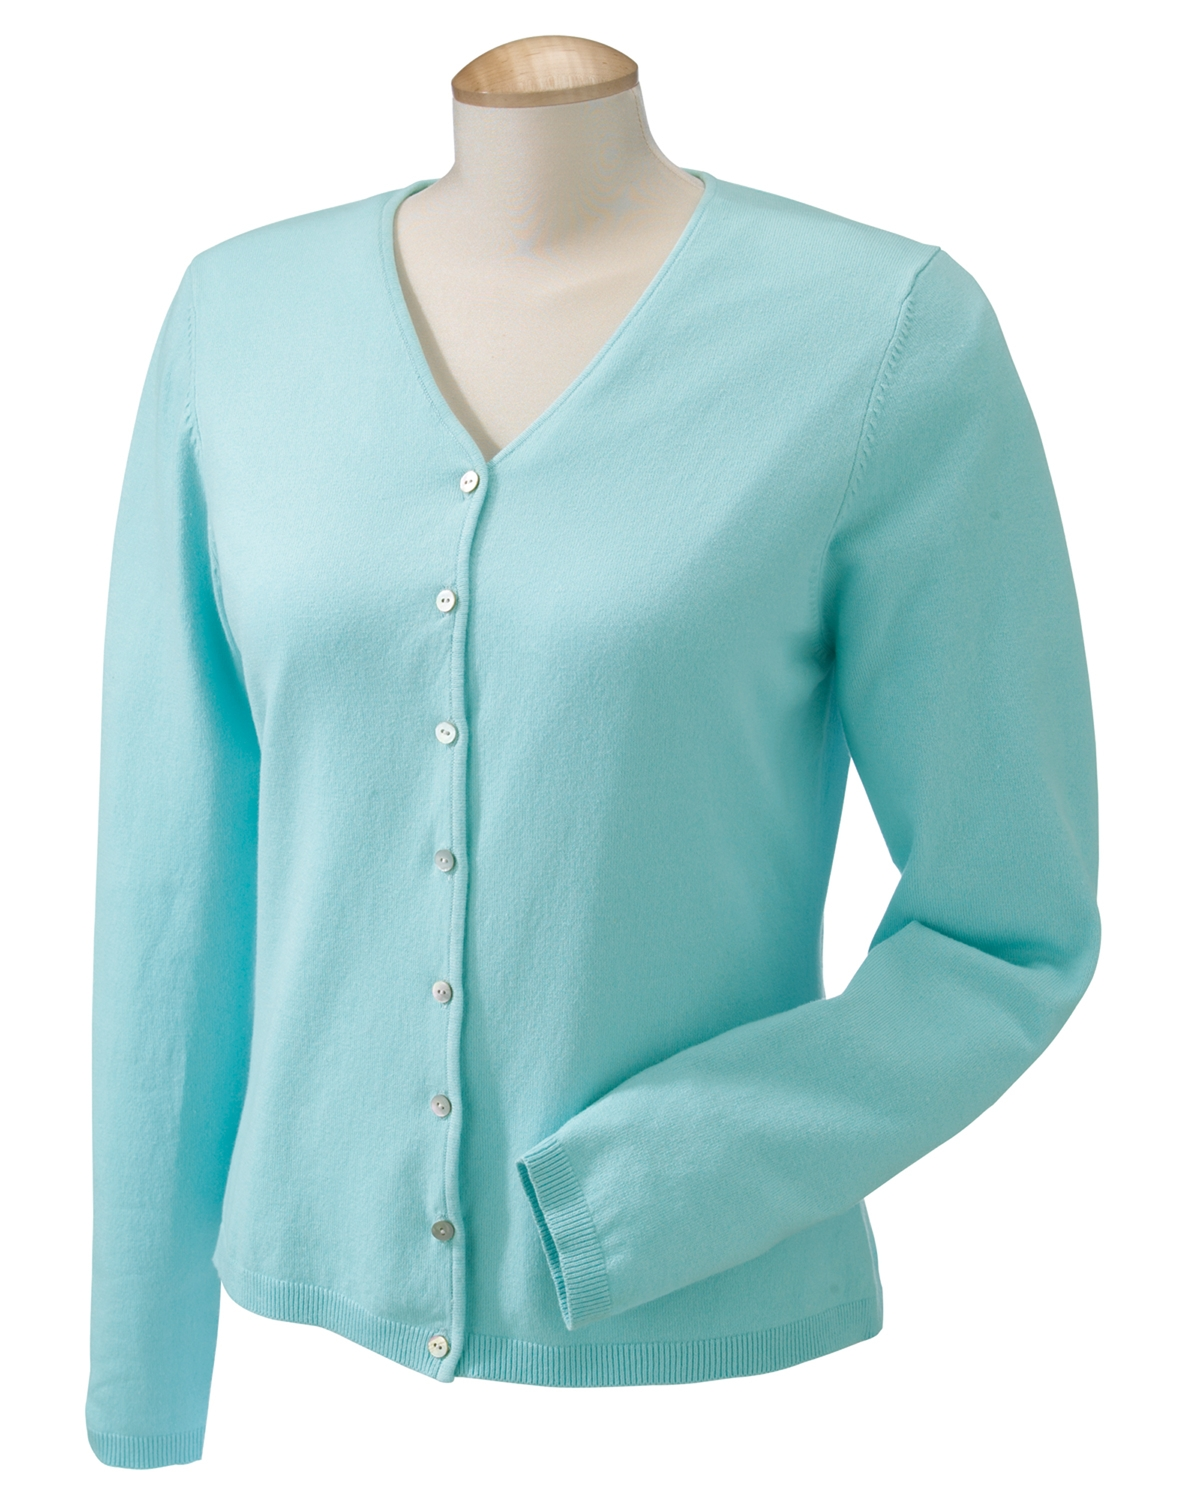 Shop Stein Mart for the best collection of women's sweaters, shrugs and cardigans. From finding the perfect name brand sweater to wear with your dress to a chic, cozy cardigan, we have you covered with great sweater styles--all at an affordable price.